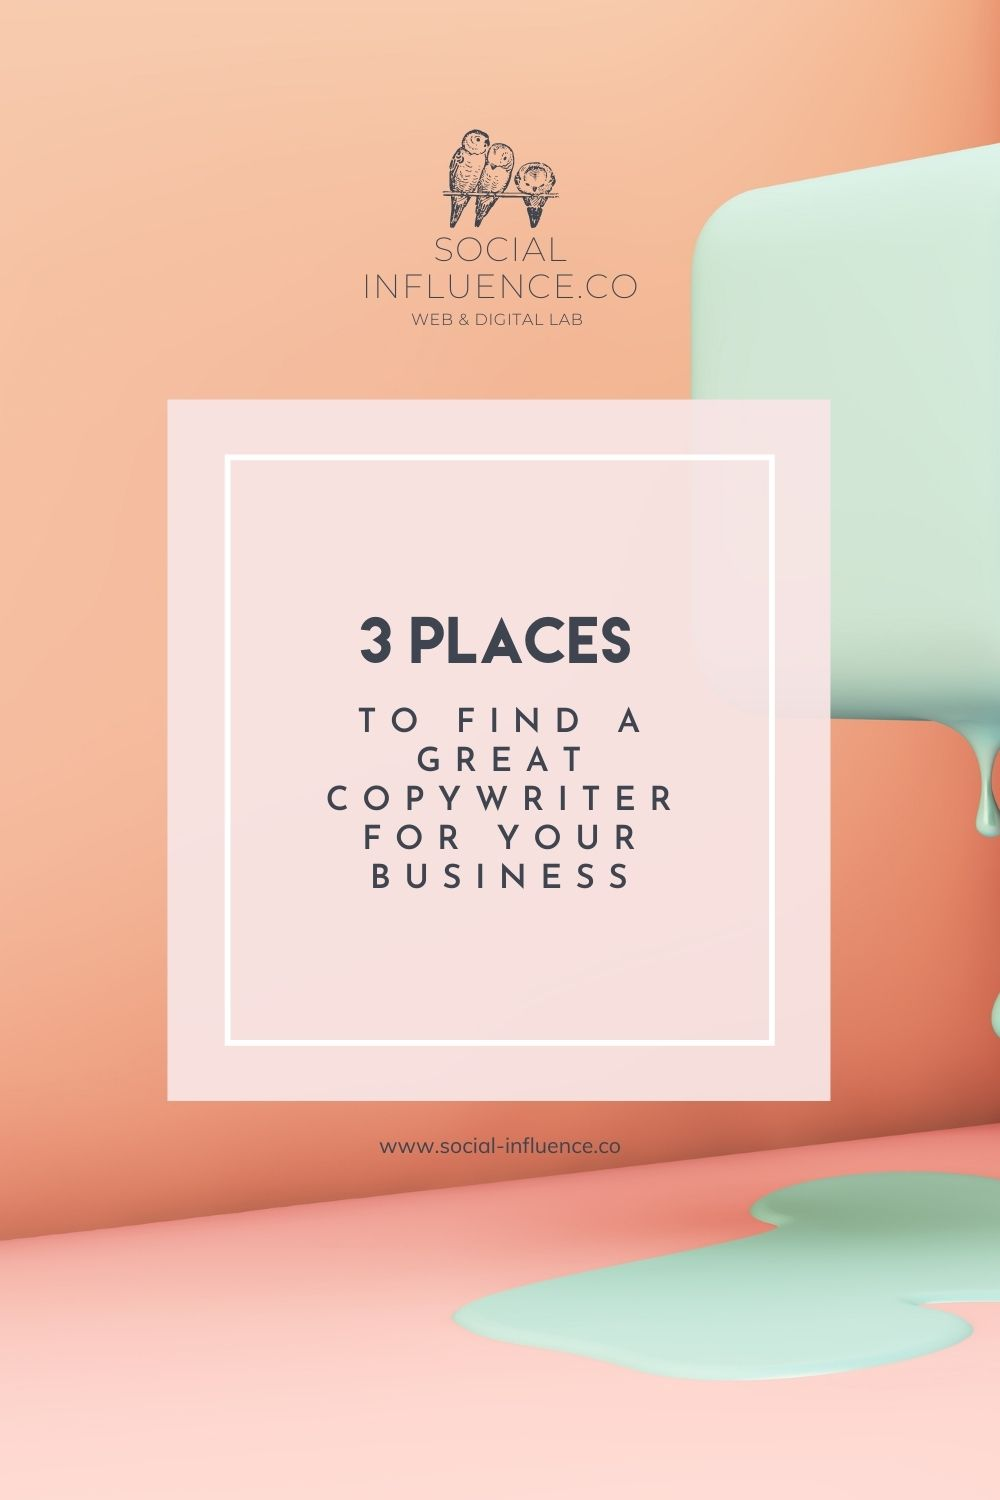 to Find a Great Copywriter for Your Business on a pastel background